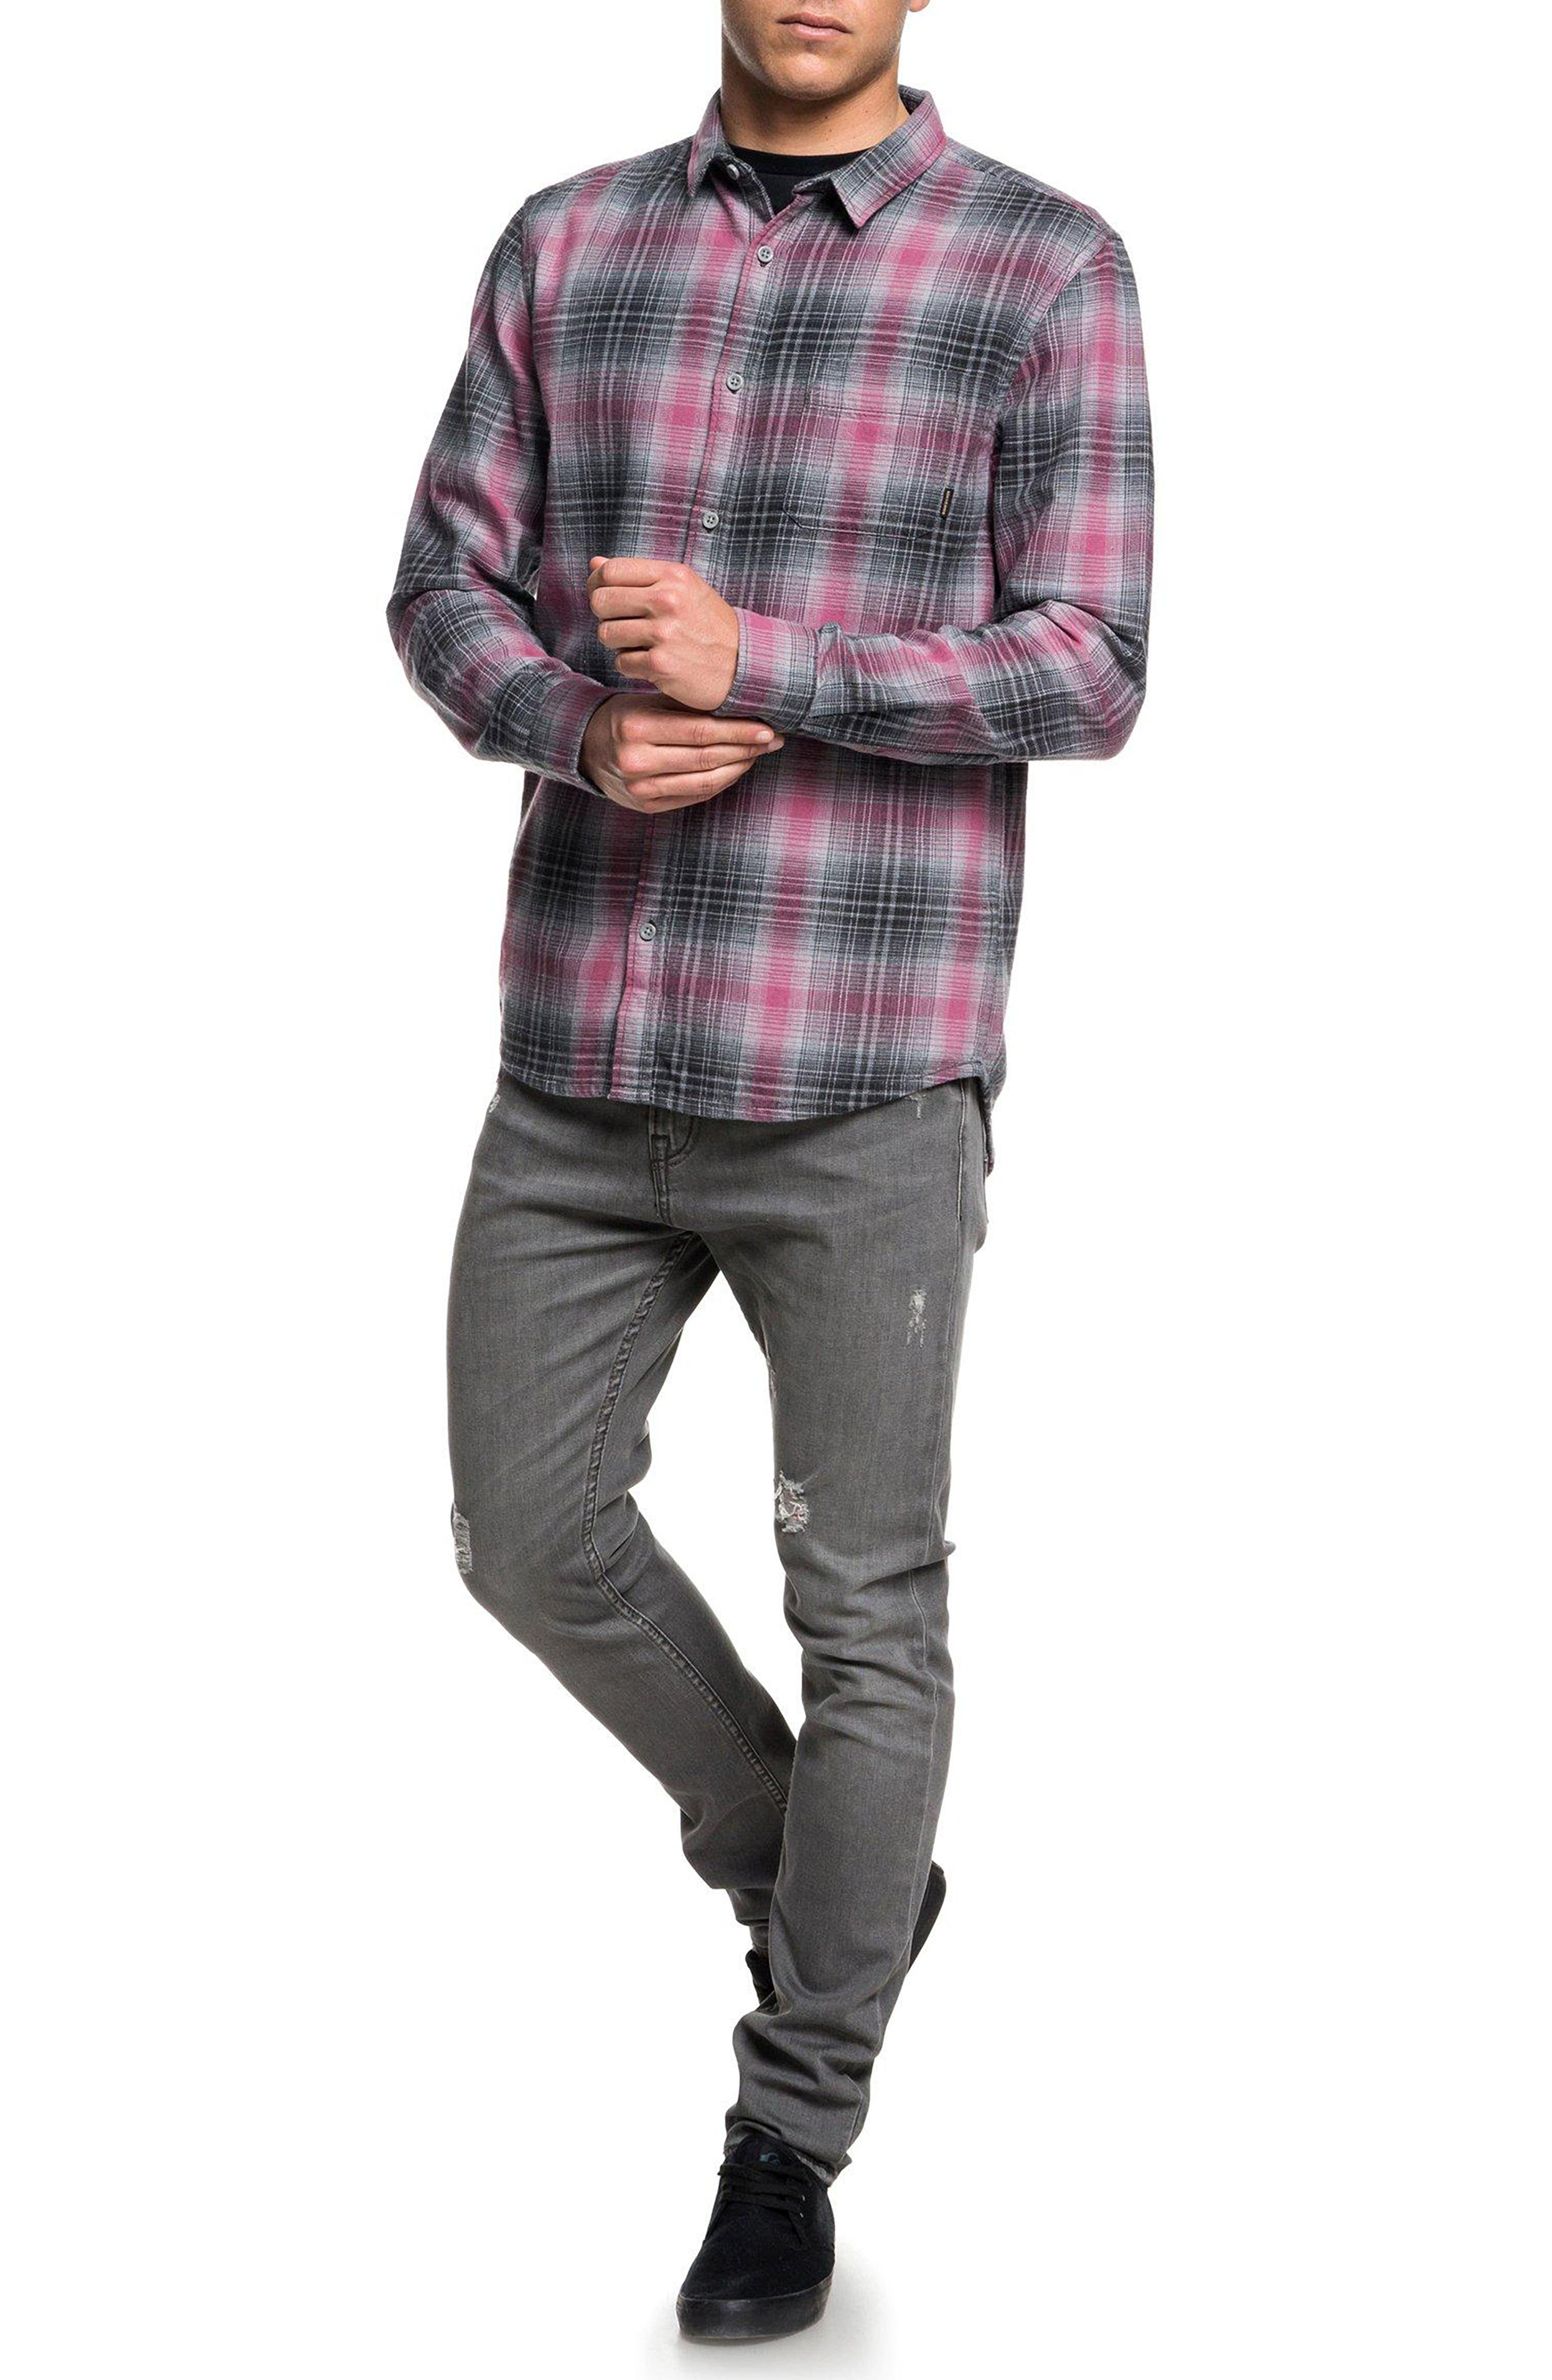 Fatherfly Flannel Shirt,                             Alternate thumbnail 3, color,                             TARMAC FATHERFLY CHECK